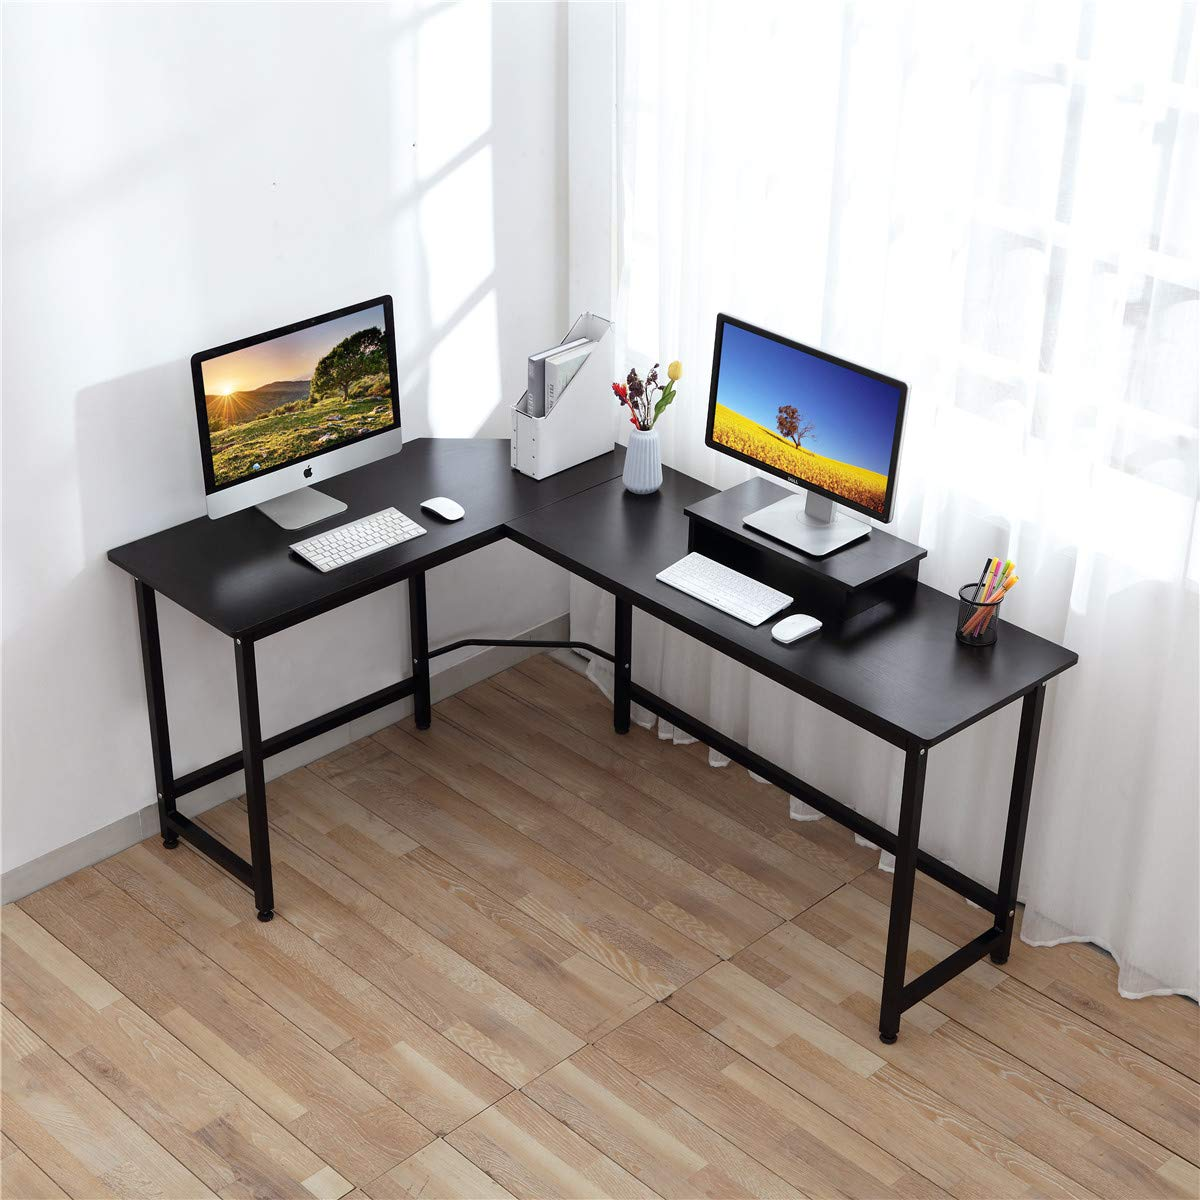 Computer Desk – CrazyLynX Corner Desk PC Workstation Table with Monitor Stand for PC Laptop, for Home Office, Wood Metal Black-N